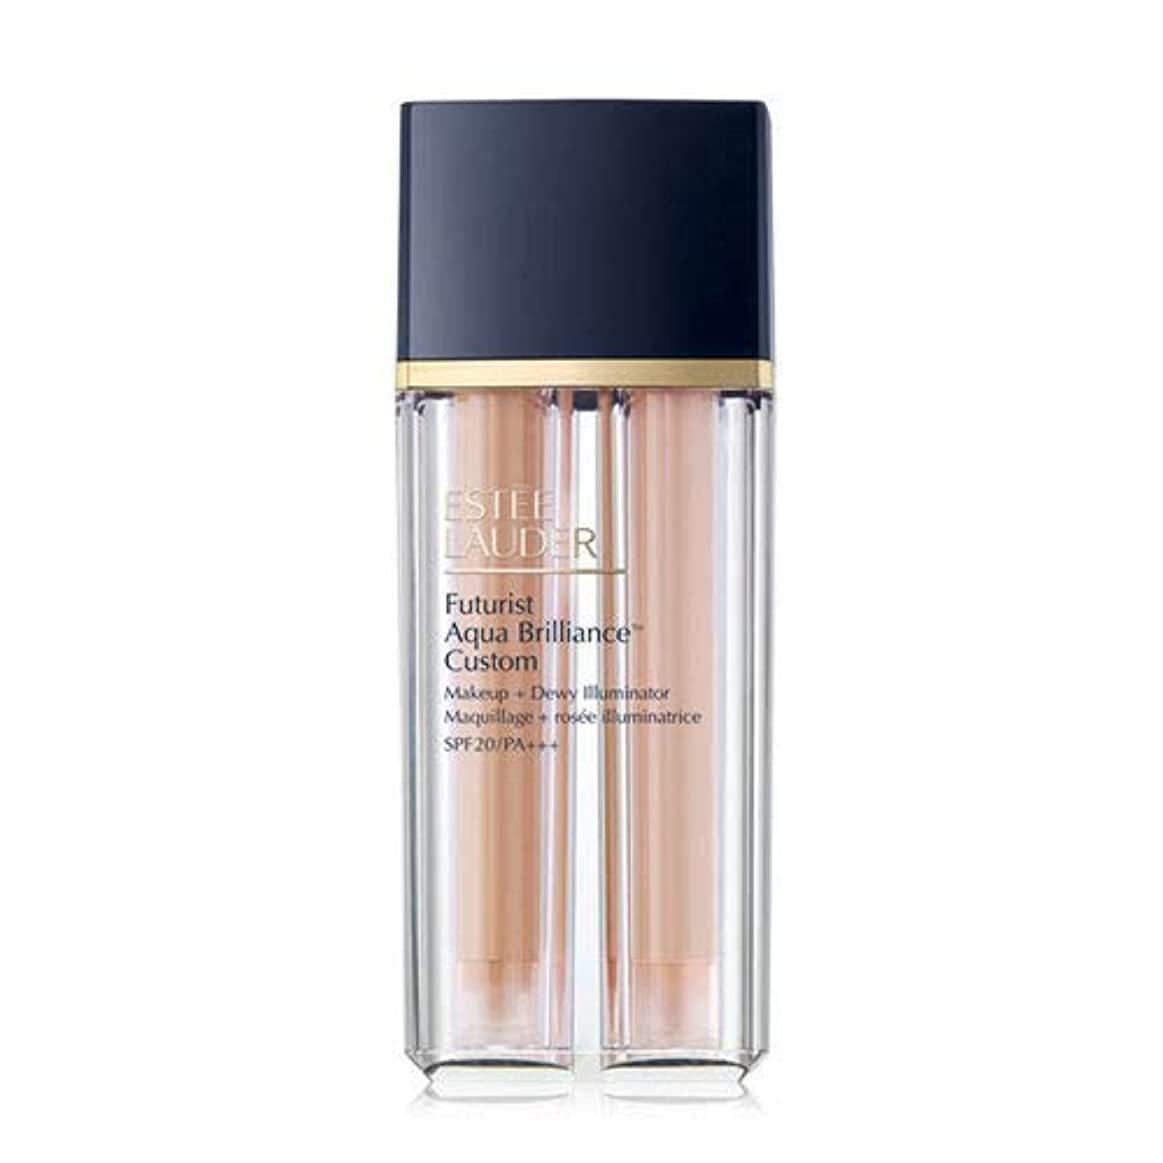 ショッピングセンター届けるホーンEstee Lauder(エスティローダー) Futurist Aqua Brilliance Custom Foundation & Illuminator Duo SPF20/PA+++ 15ml ×2EA #2WO...